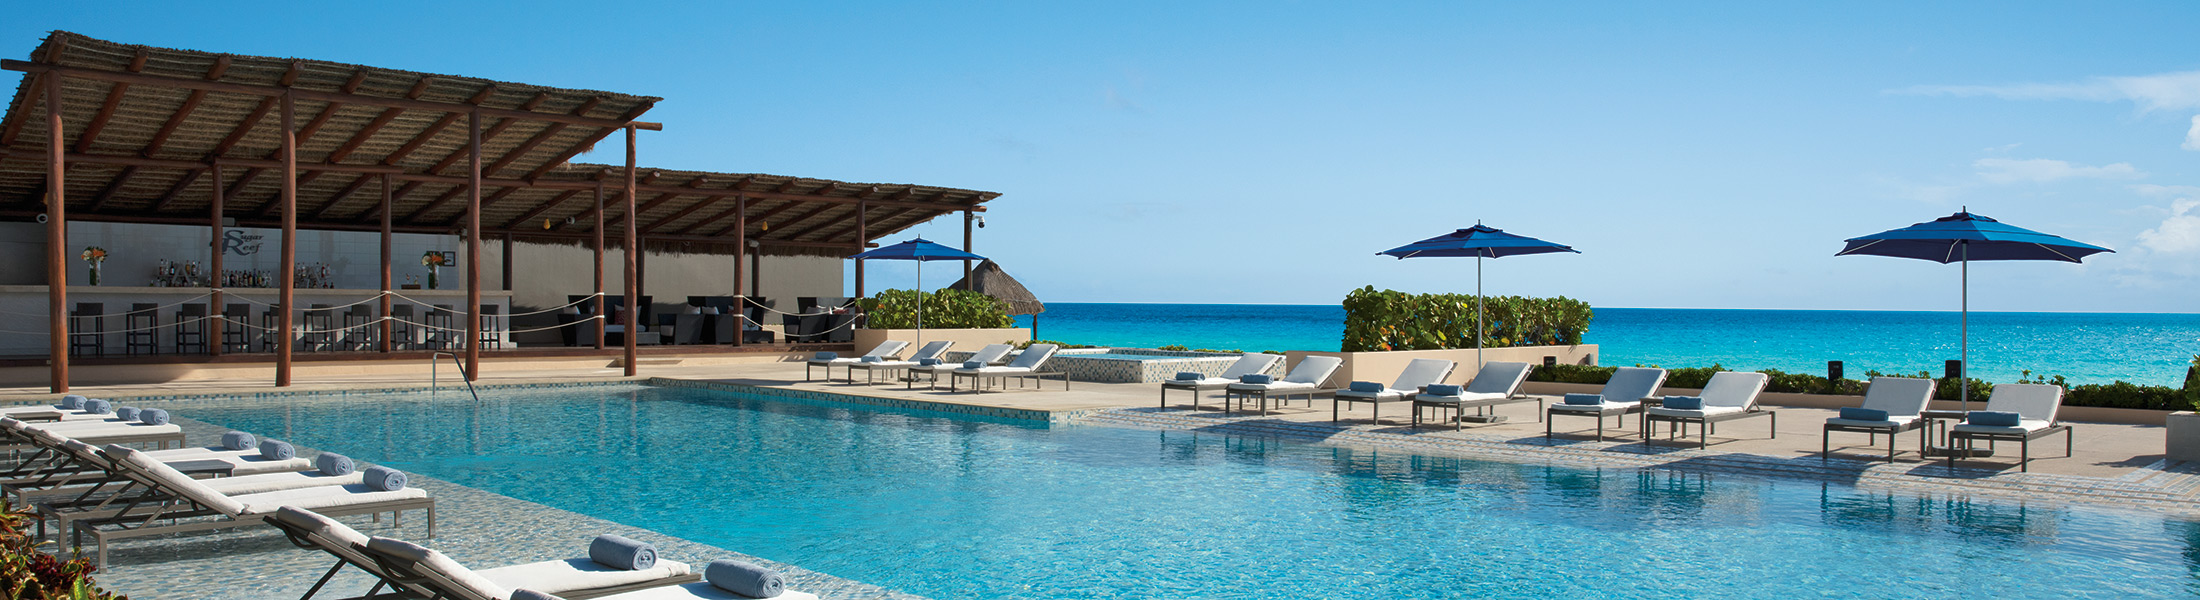 Pool and sun loungers at Secrets The Vine